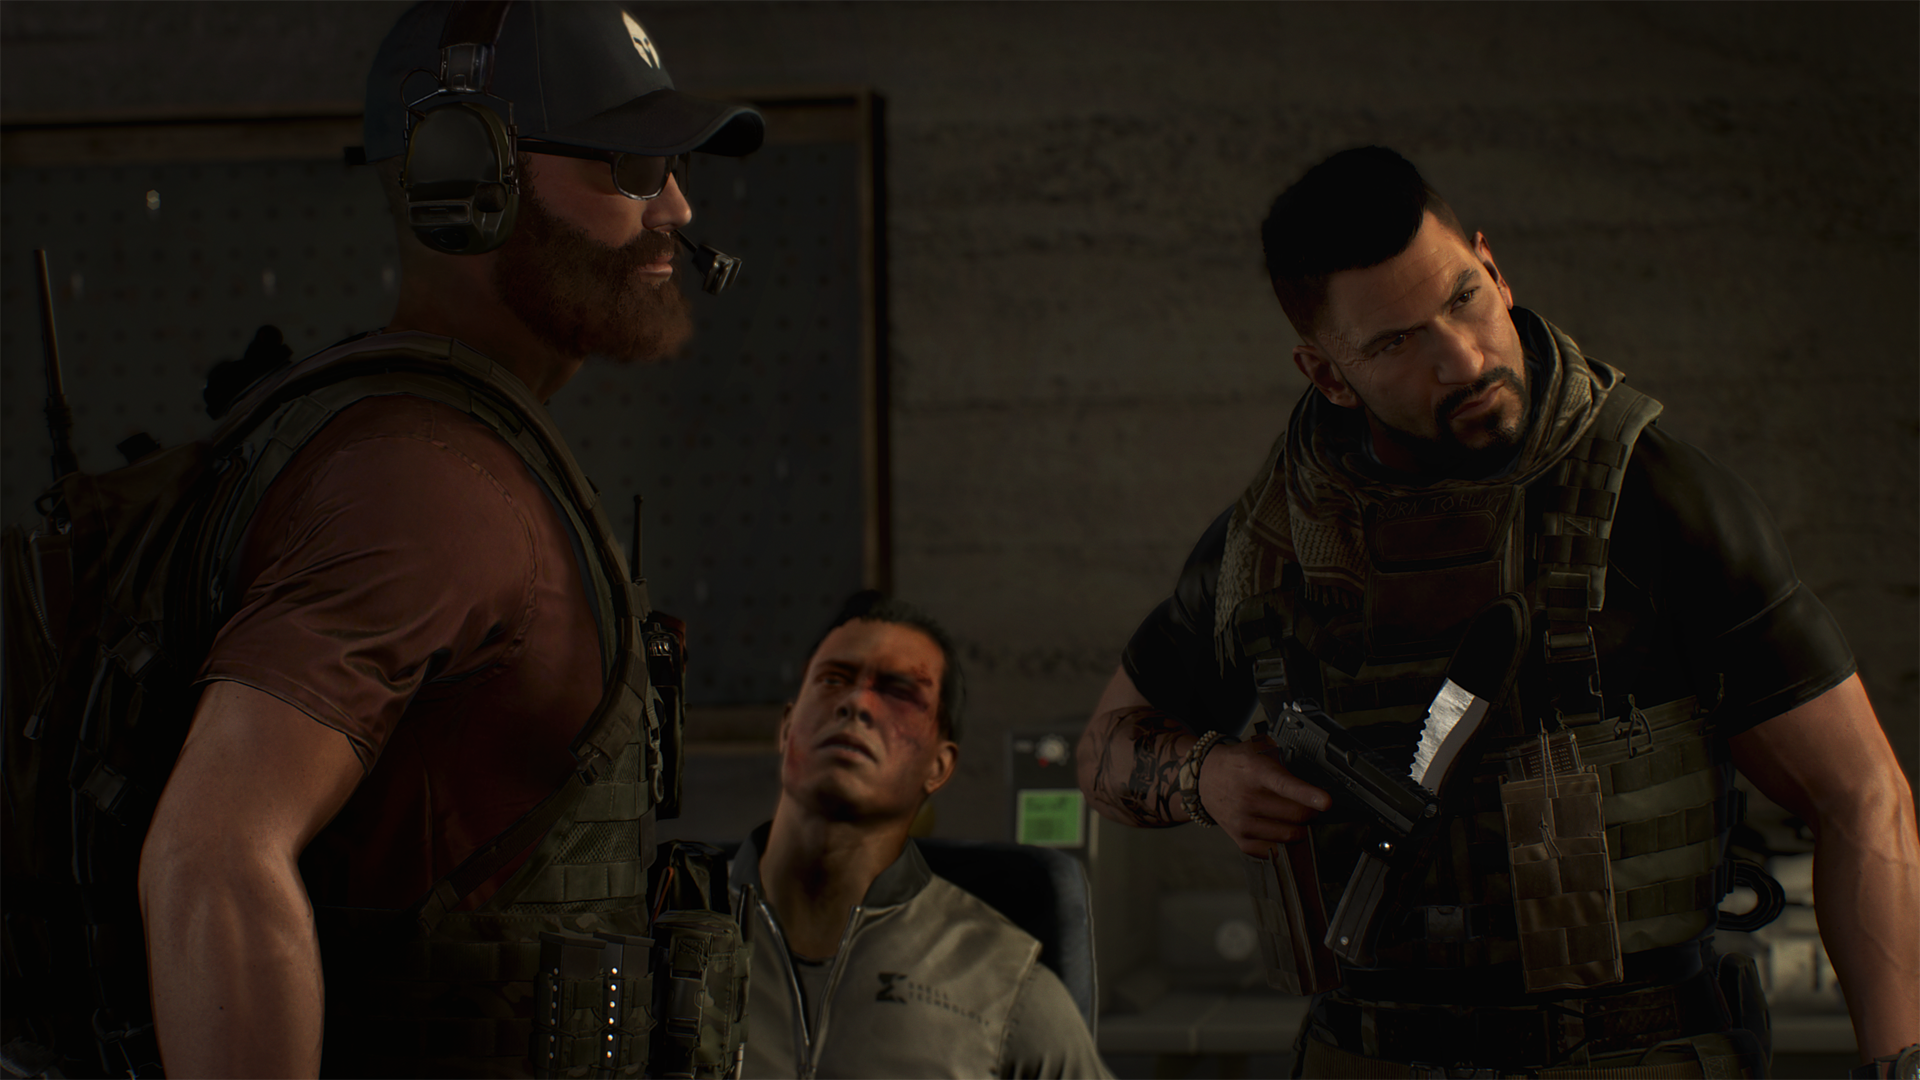 ghostrecon_2827063b.png